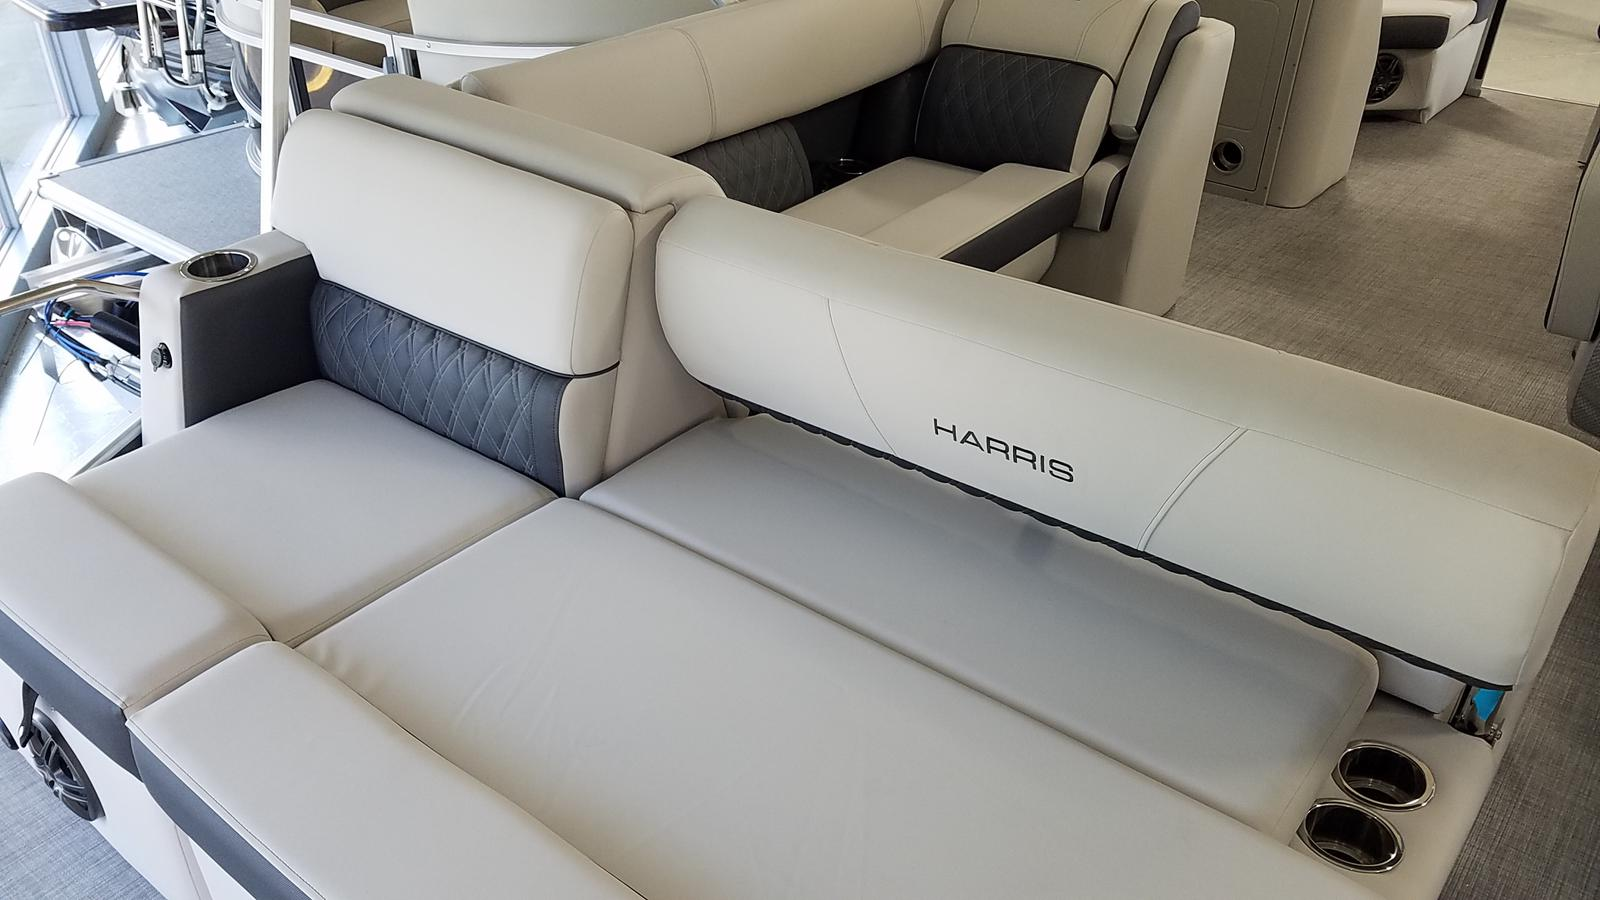 2021 Harris boat for sale, model of the boat is Sunliner 210 & Image # 4 of 17